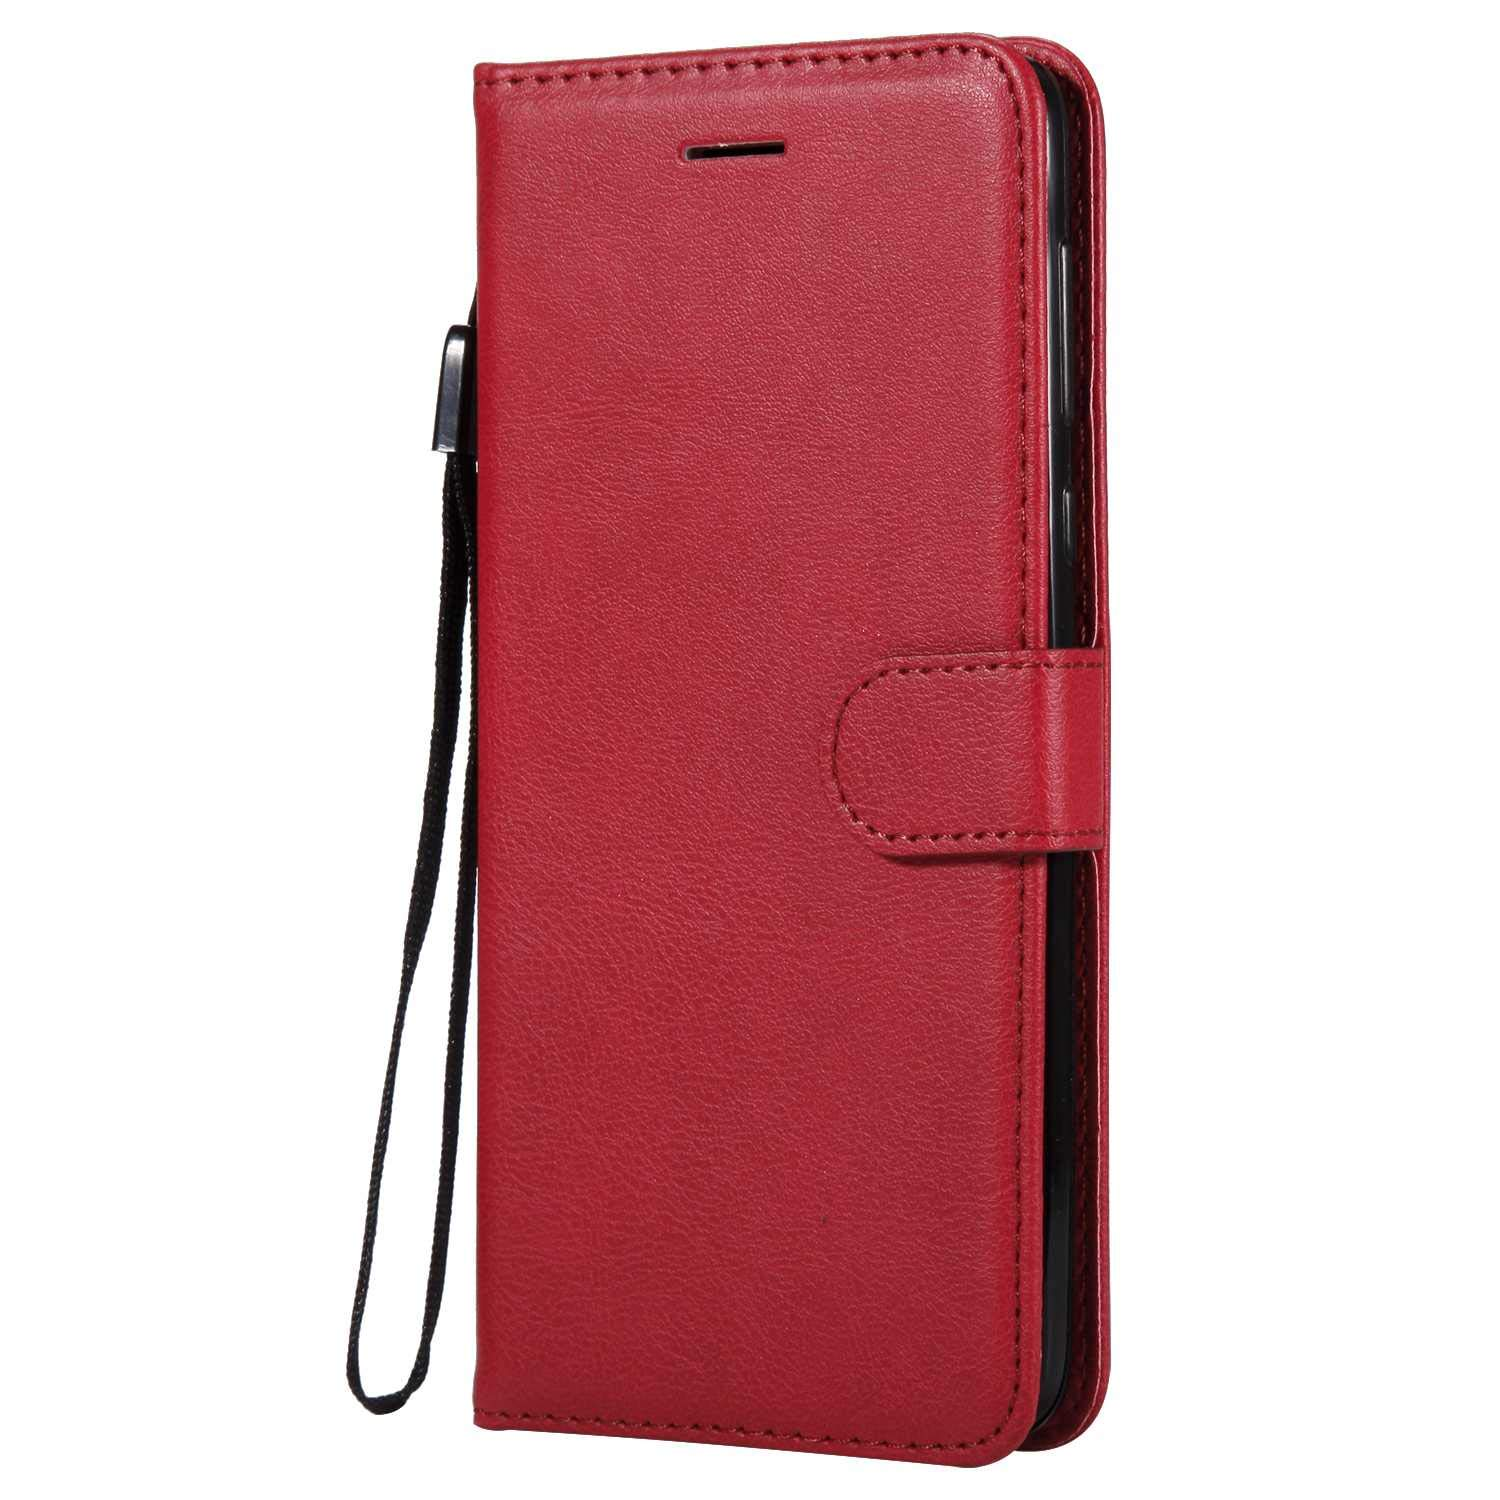 Moto G6 Plus 2018 Wallet Case, UNEXTATI Leather Flip Case with Magnetic Closure and Card Holders, Anti-Shock Bumper Cover for Moto G6 Plus 2018 (Red #3)